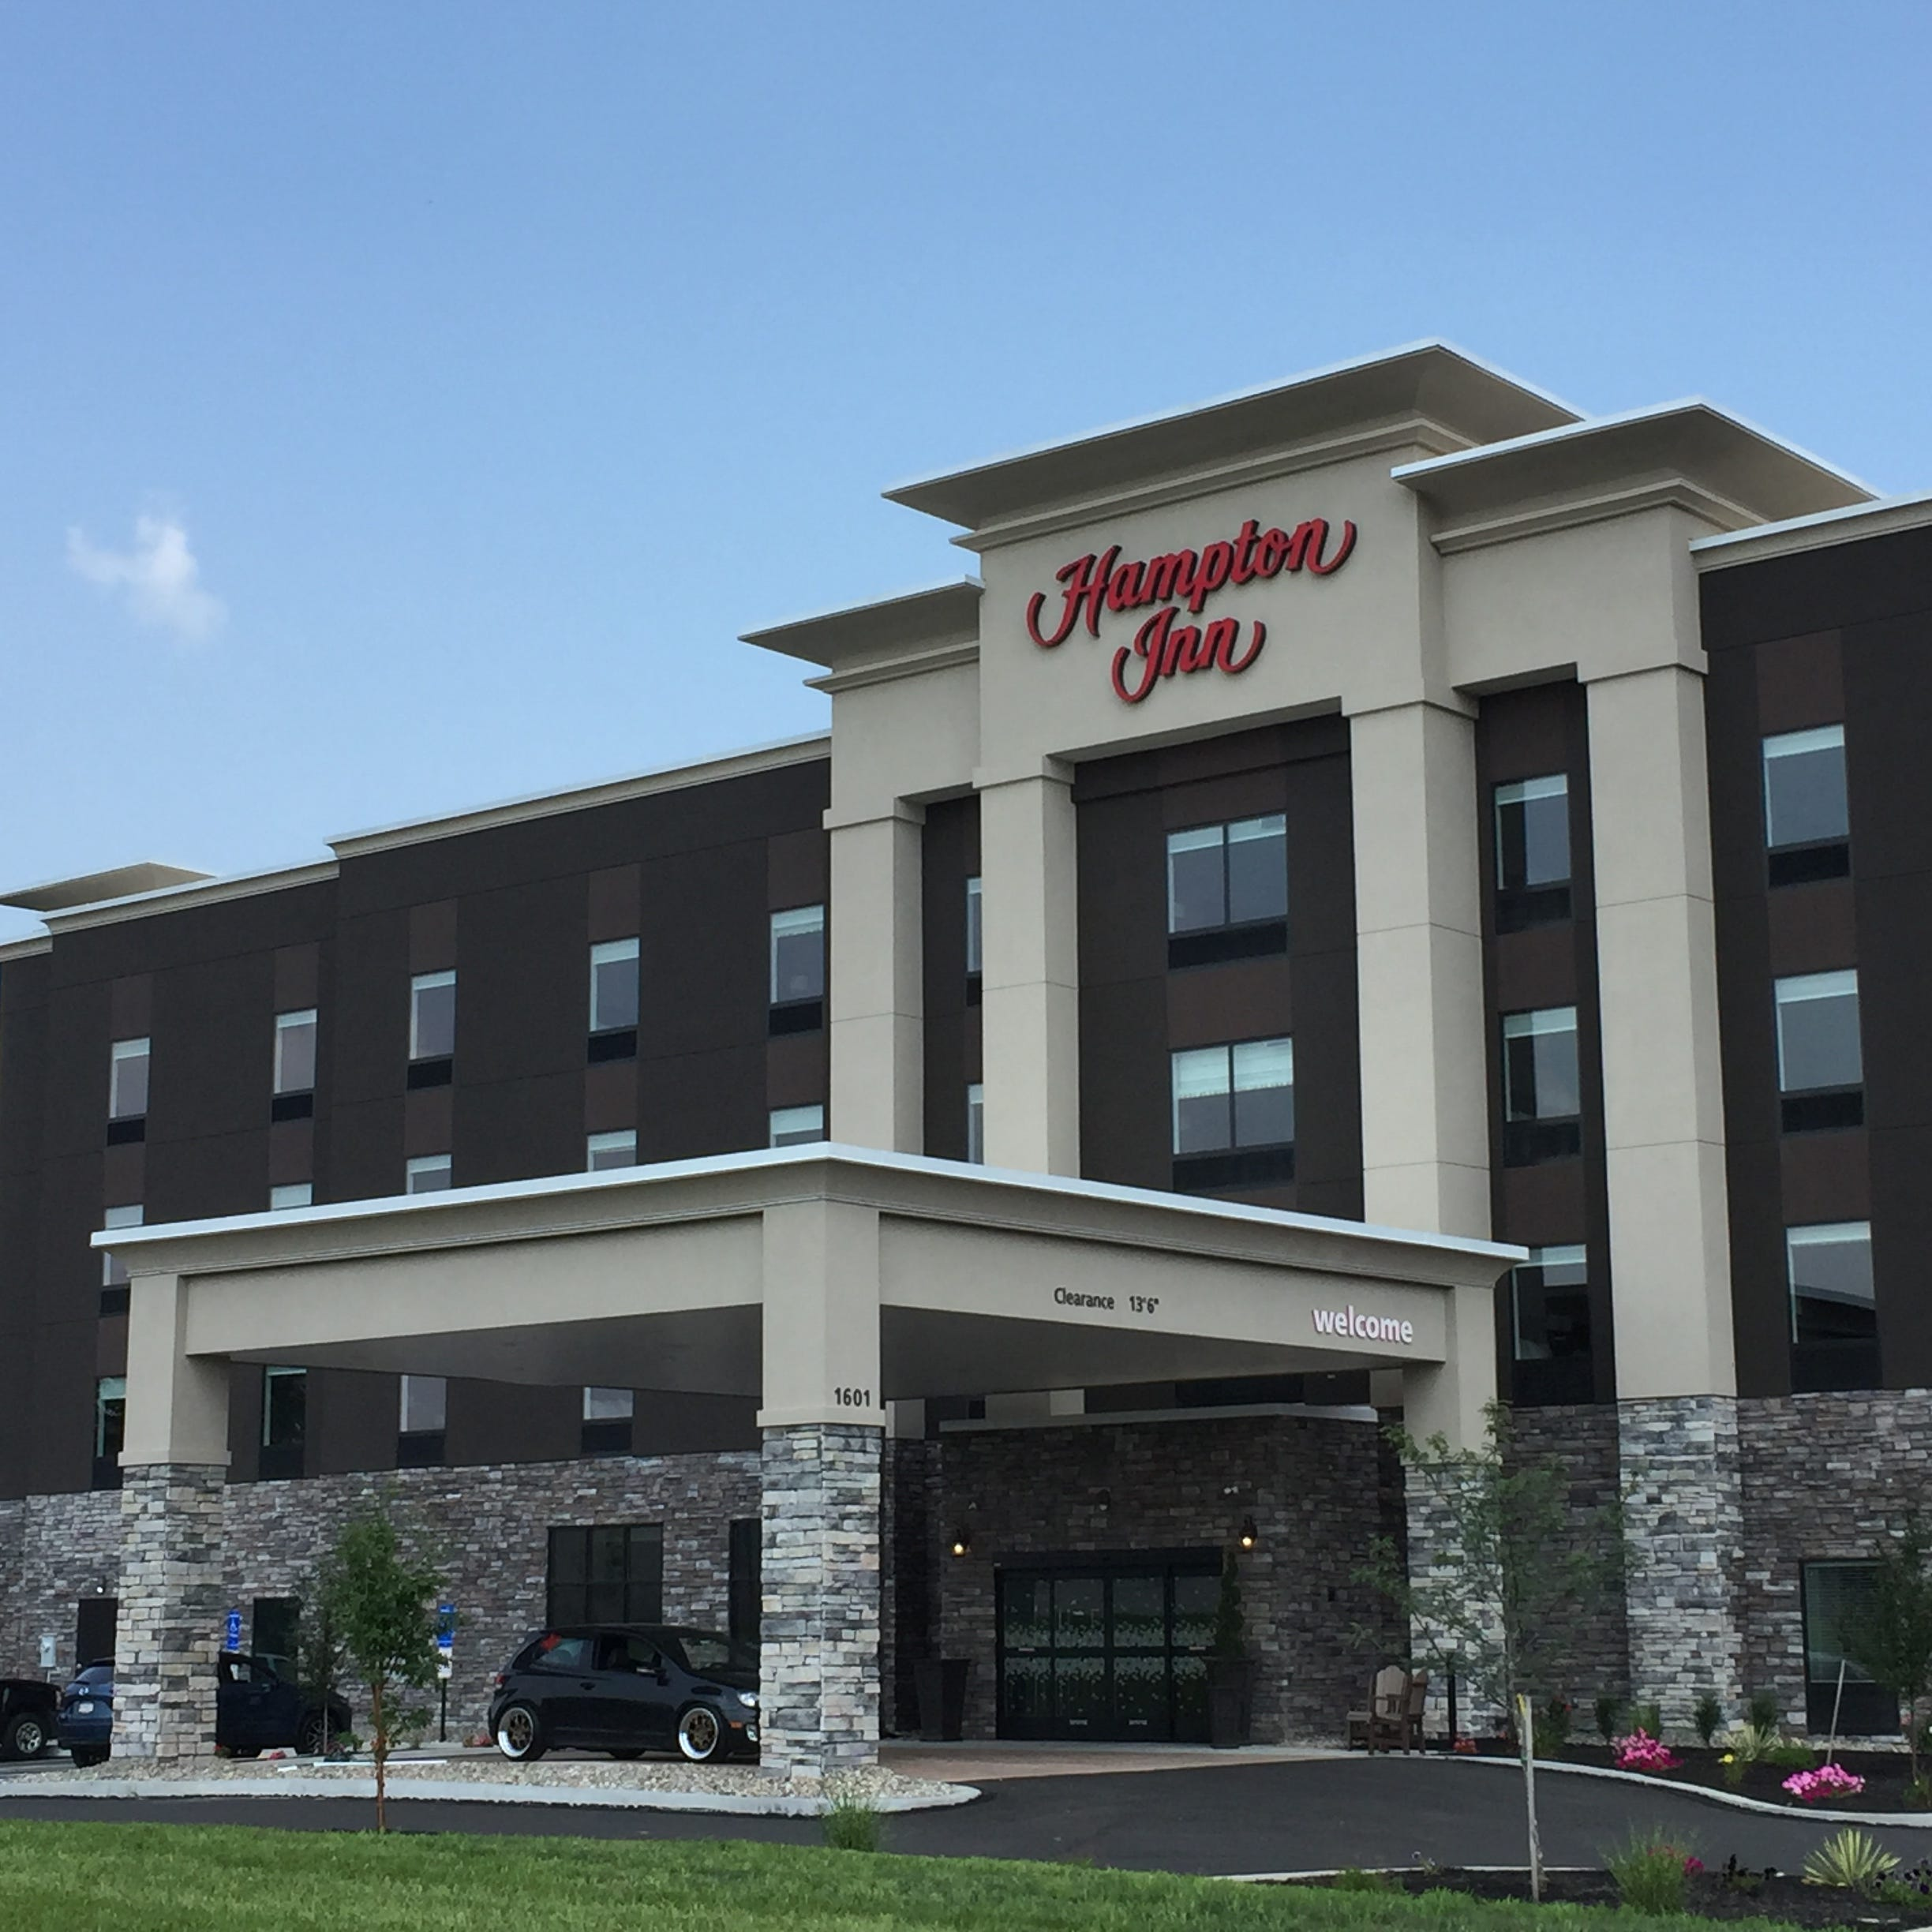 Hampton Inn opens in Lebanon